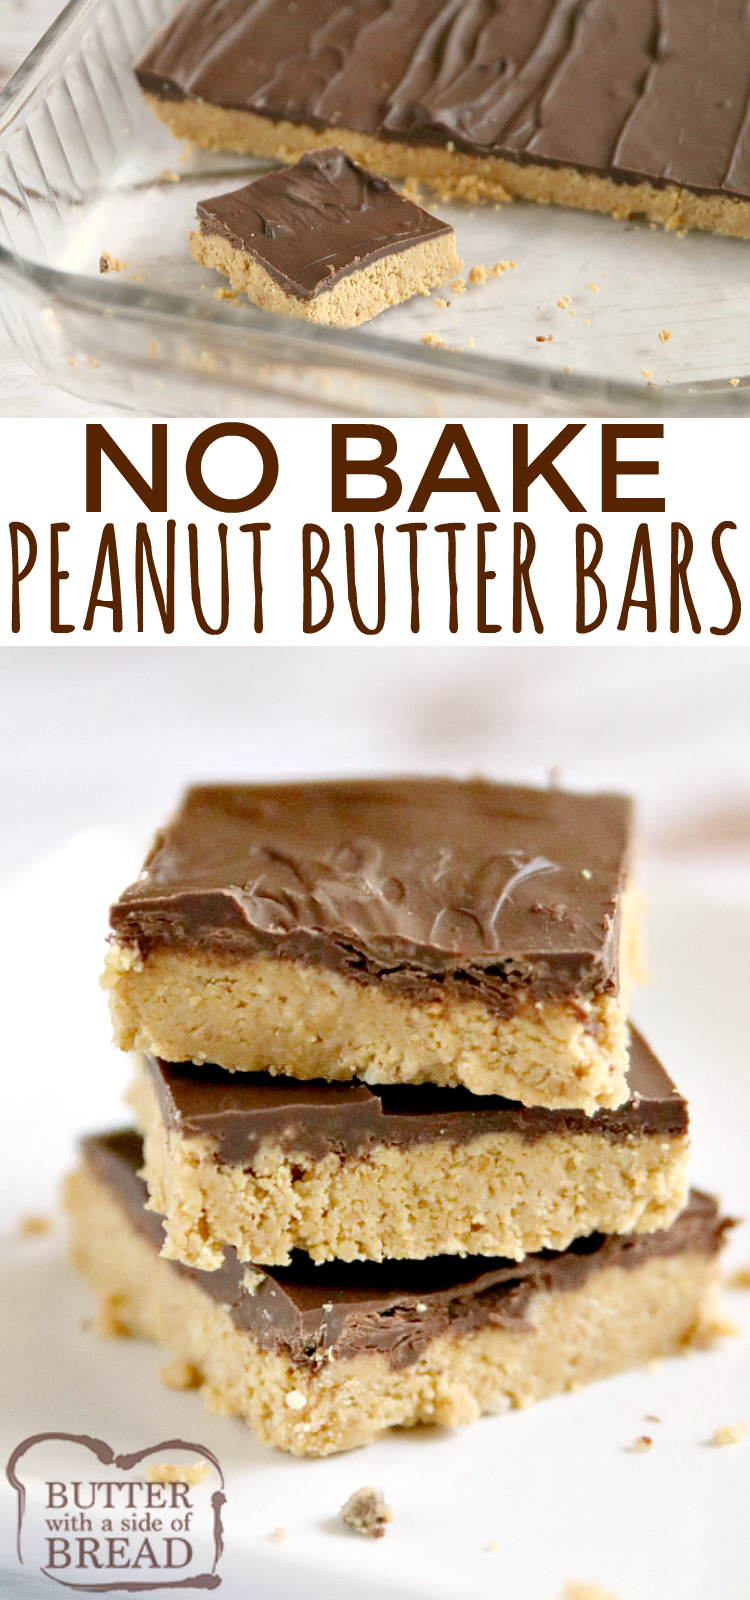 No Bake Peanut Butter Bars are made with only five ingredients and they taste like Reese's Peanut Butter Cups! Chocolate and peanut butter come together in this delicious no bake dessert recipe.